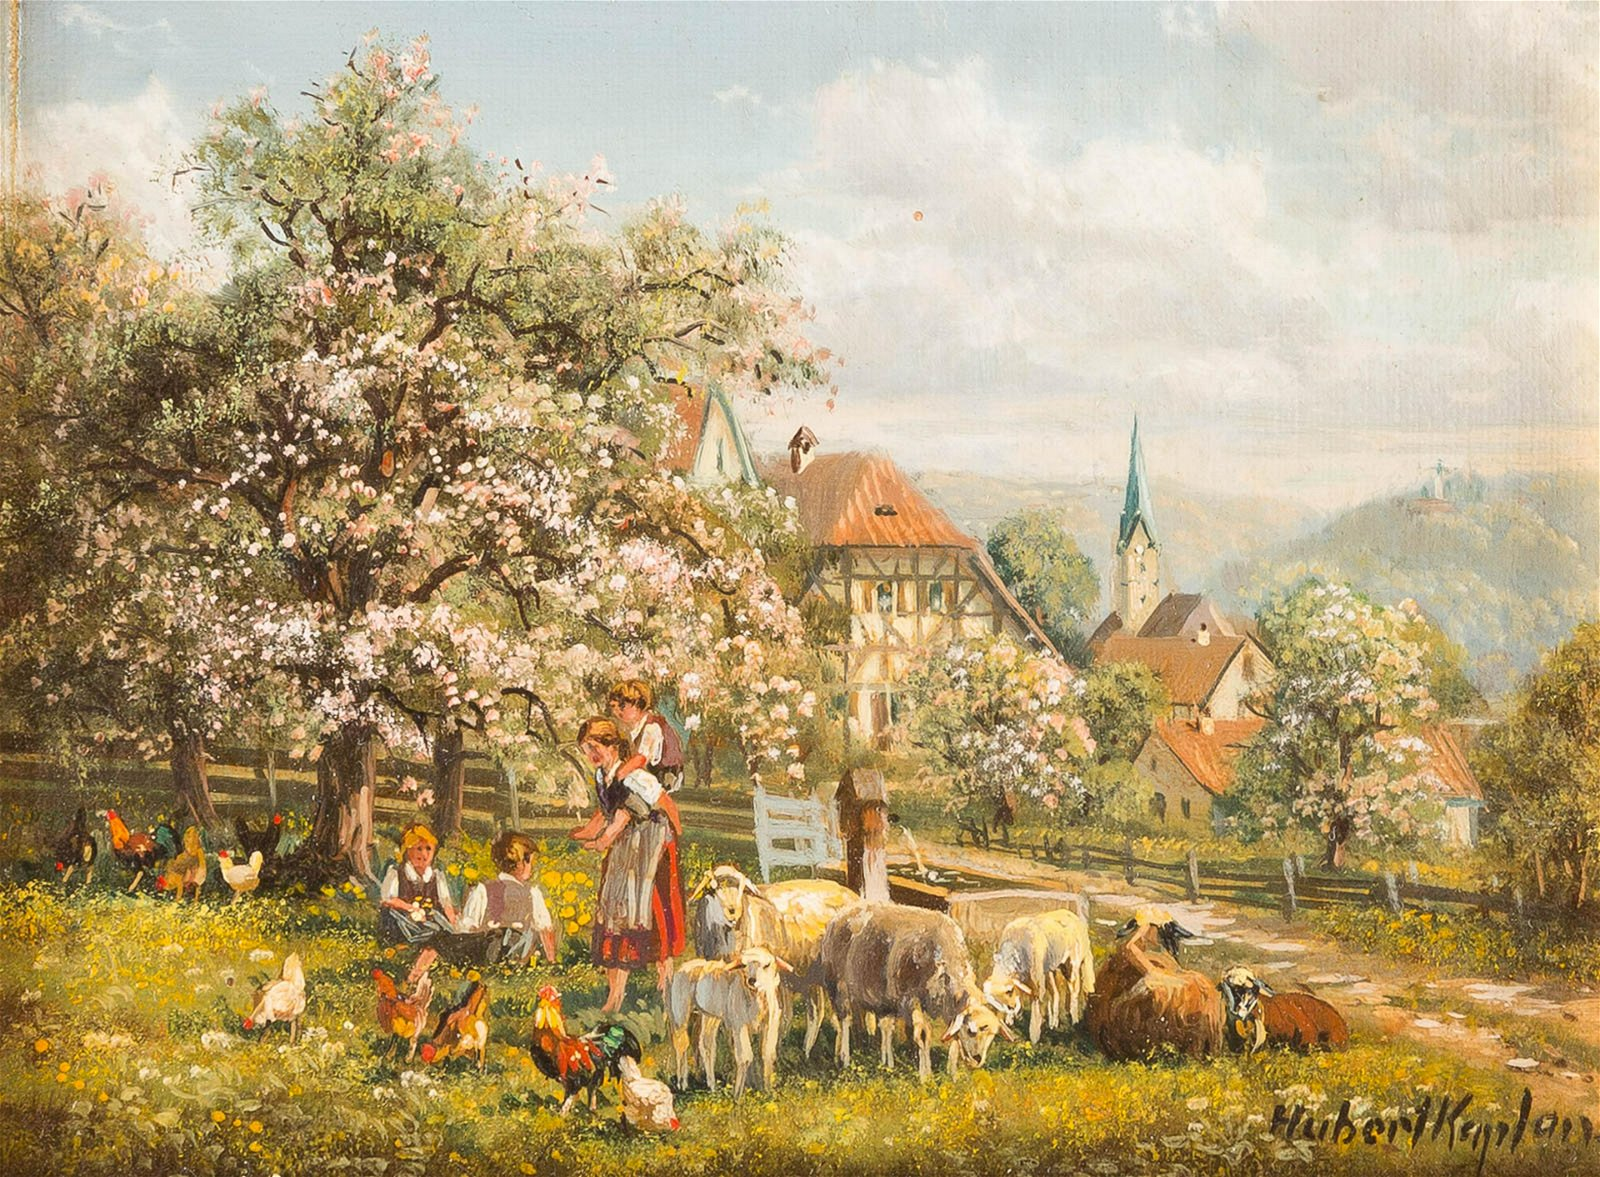 HUBERT KAPLAN 1940 Munich Domestic idyll in a village